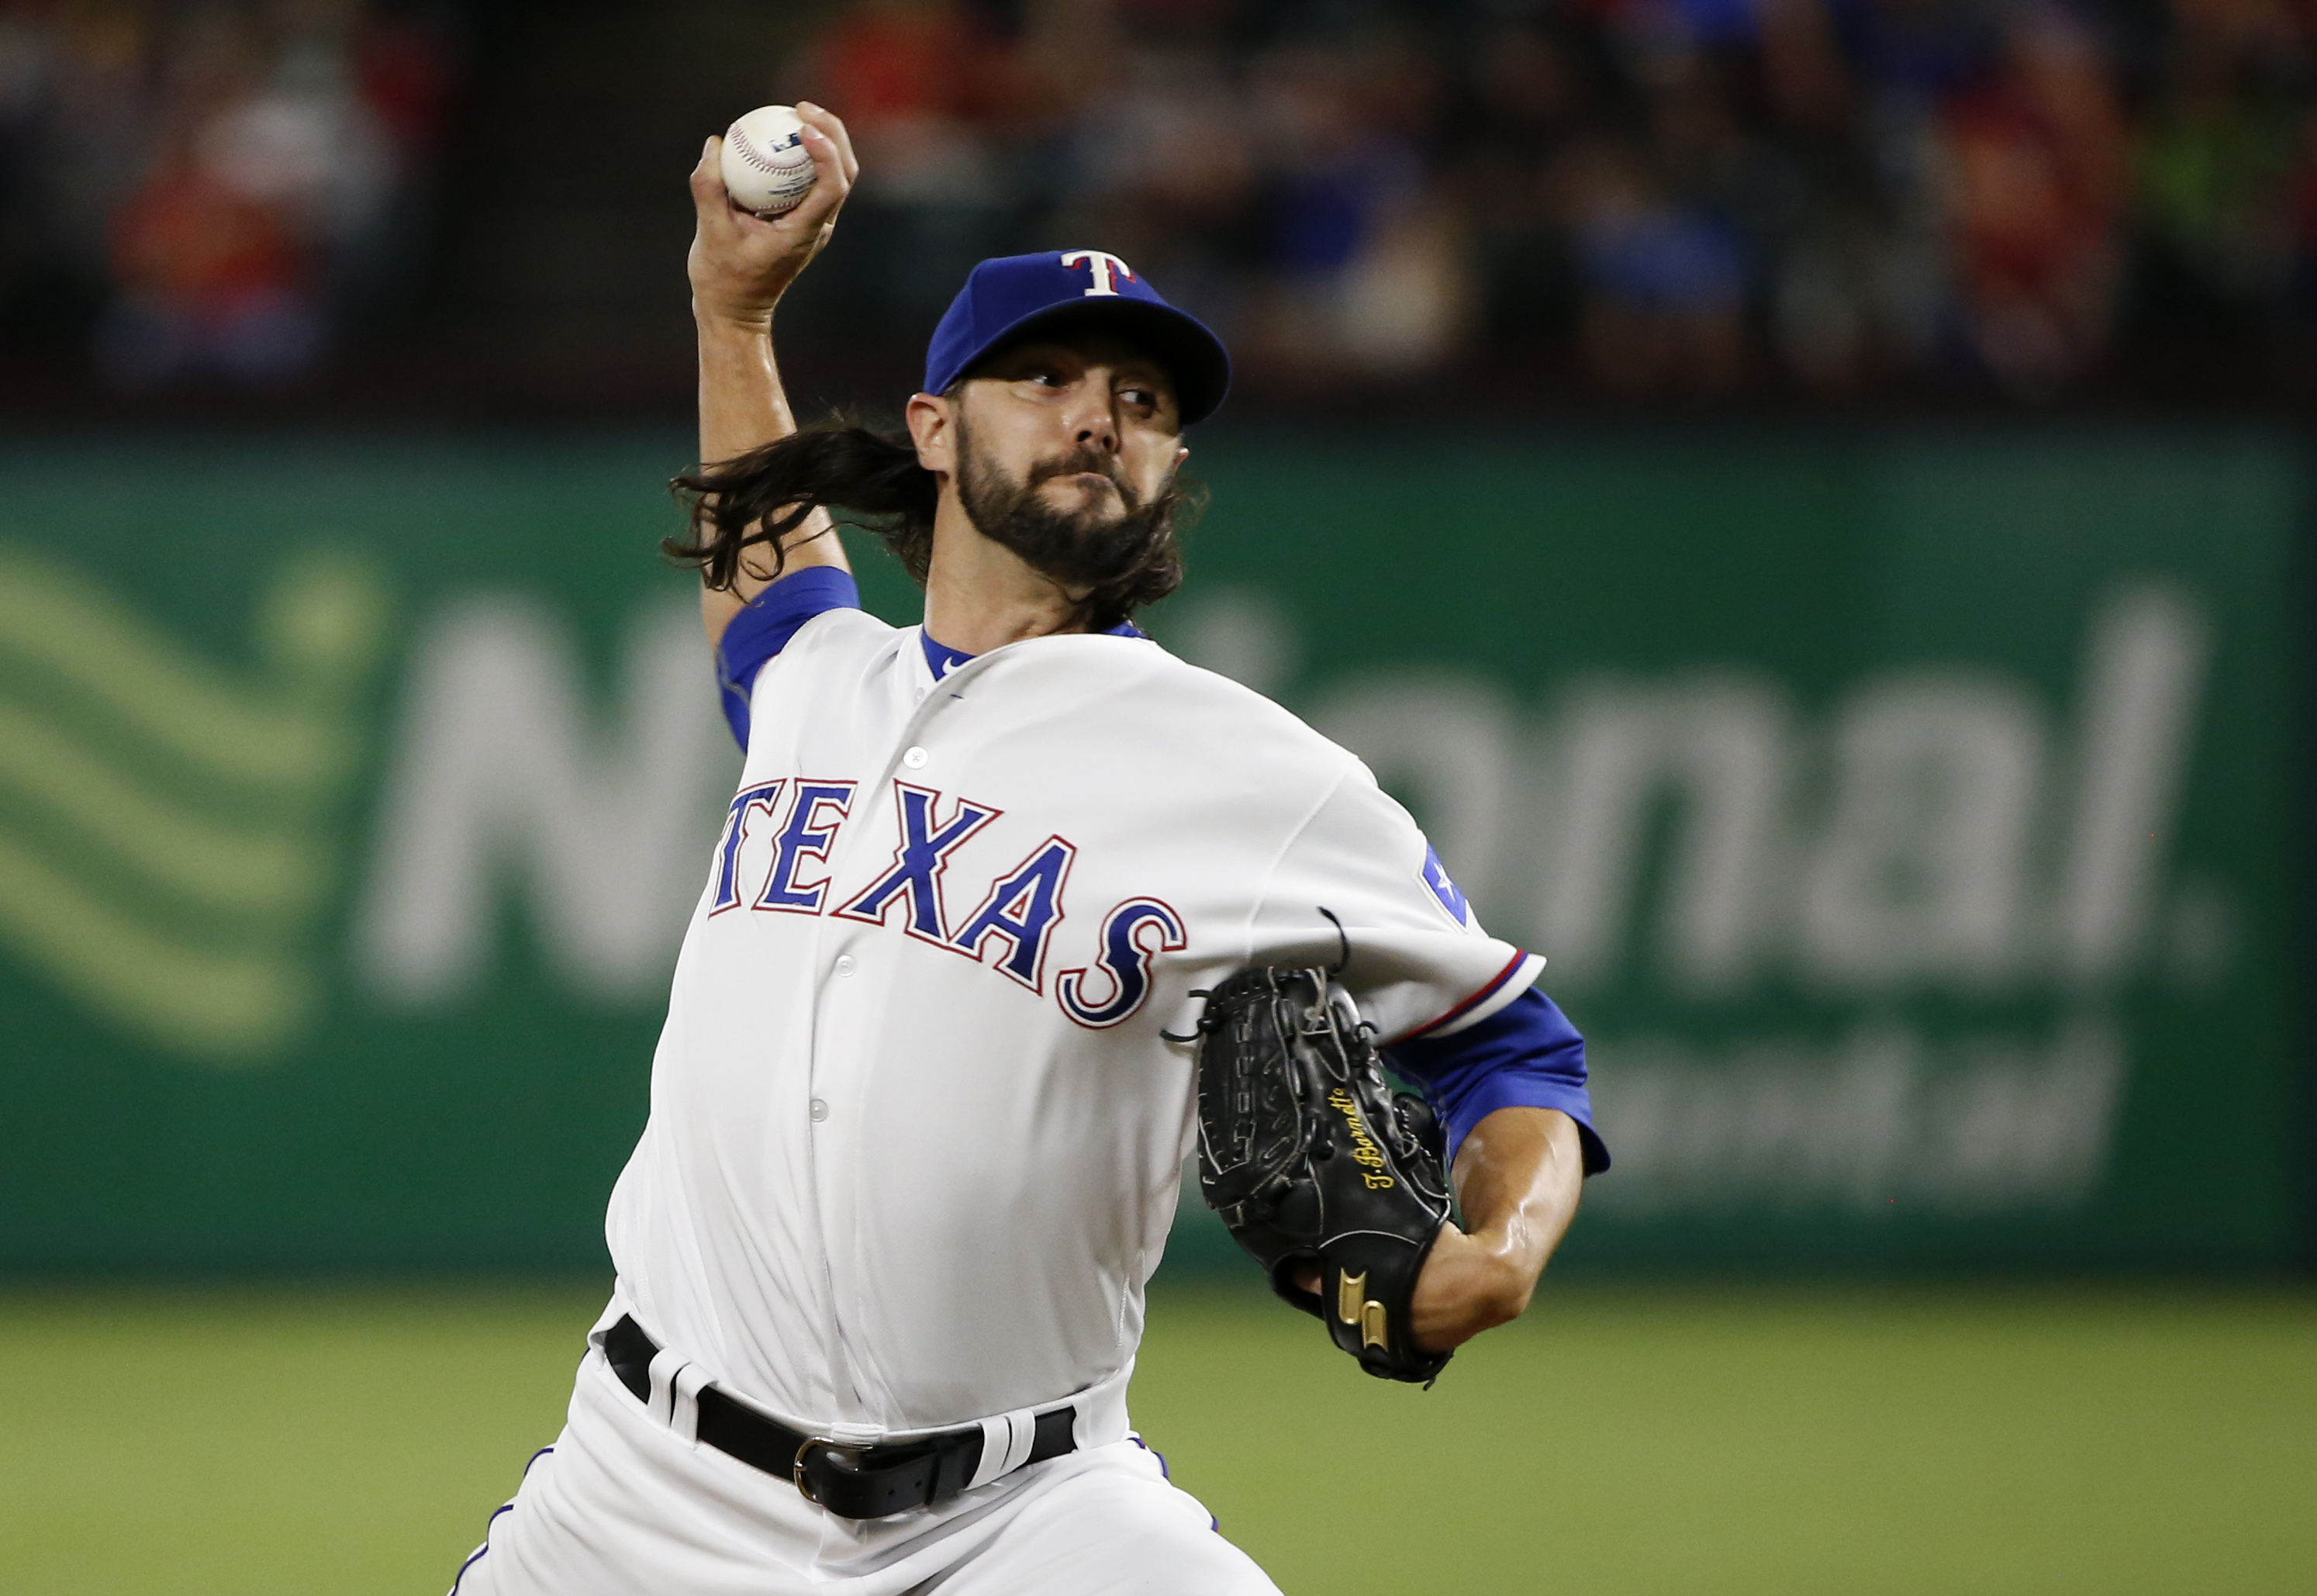 Texas Rangers relief pitcher Tony Barnette throws against the Milwaukee Brewers during the sixth inning of a baseball game Tuesday, Sept. 27, 2016, in Arlington, Texas. The Rangers won 6-4. (AP Photo/Ron Jenkins)